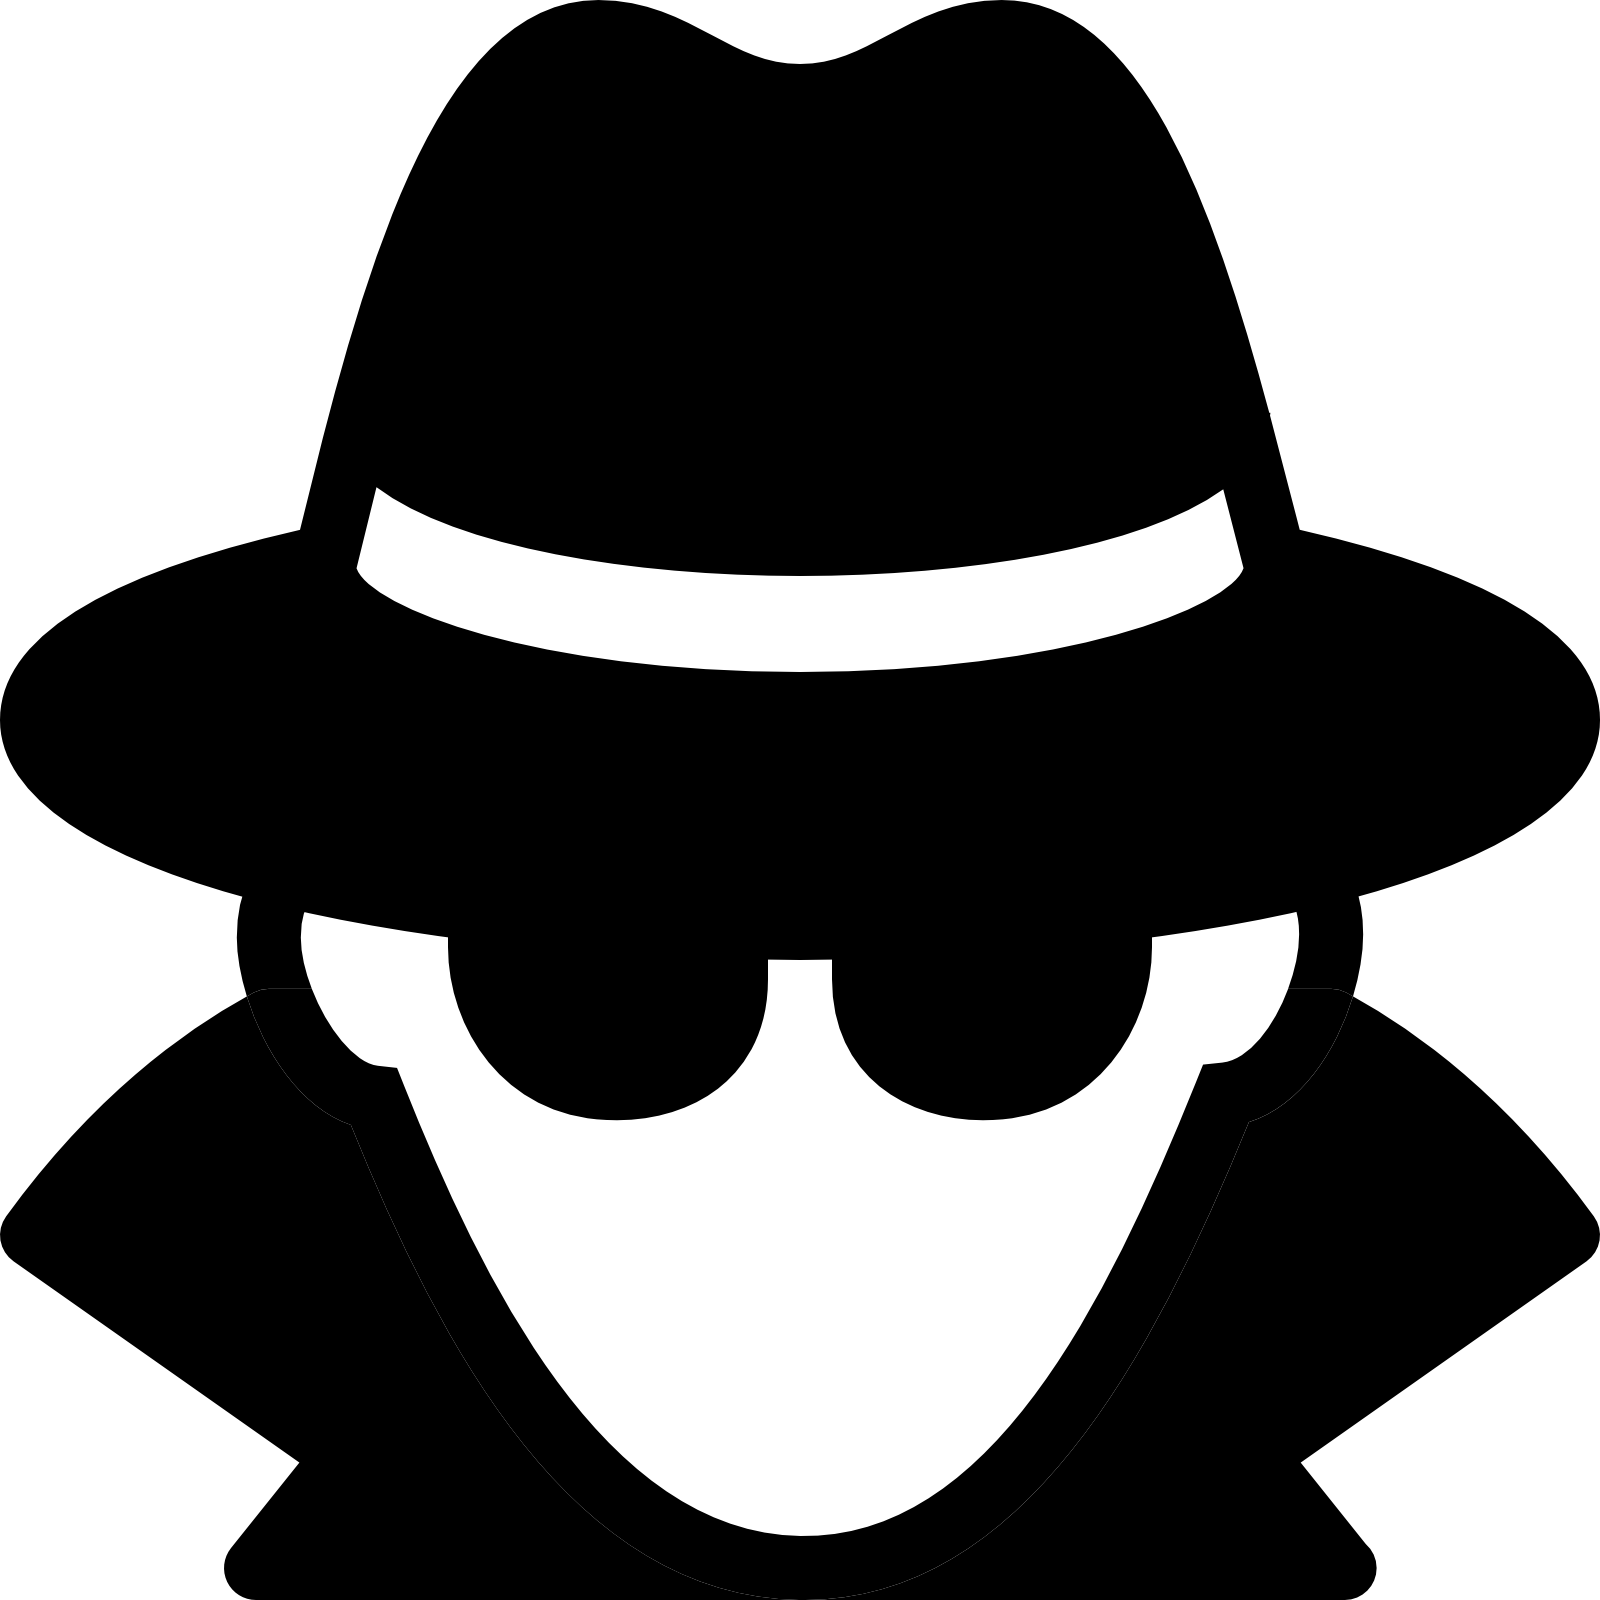 spy clipart two